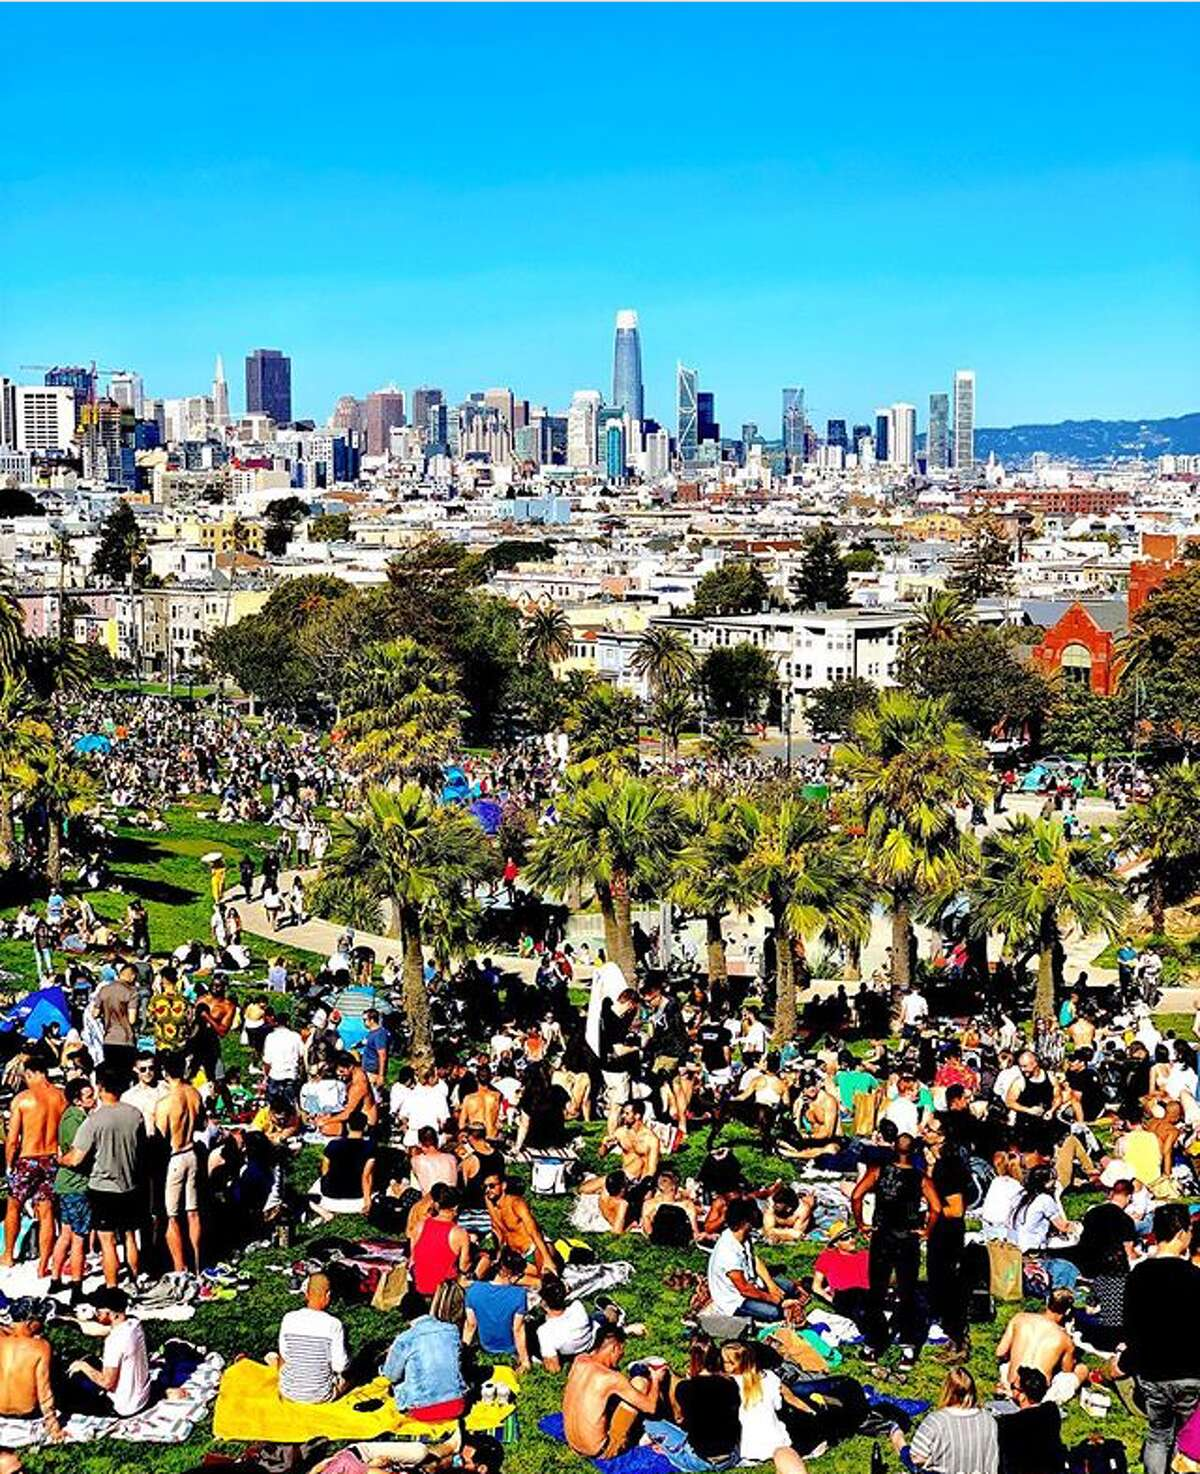 Crowded Dolores Park by @ddgg1